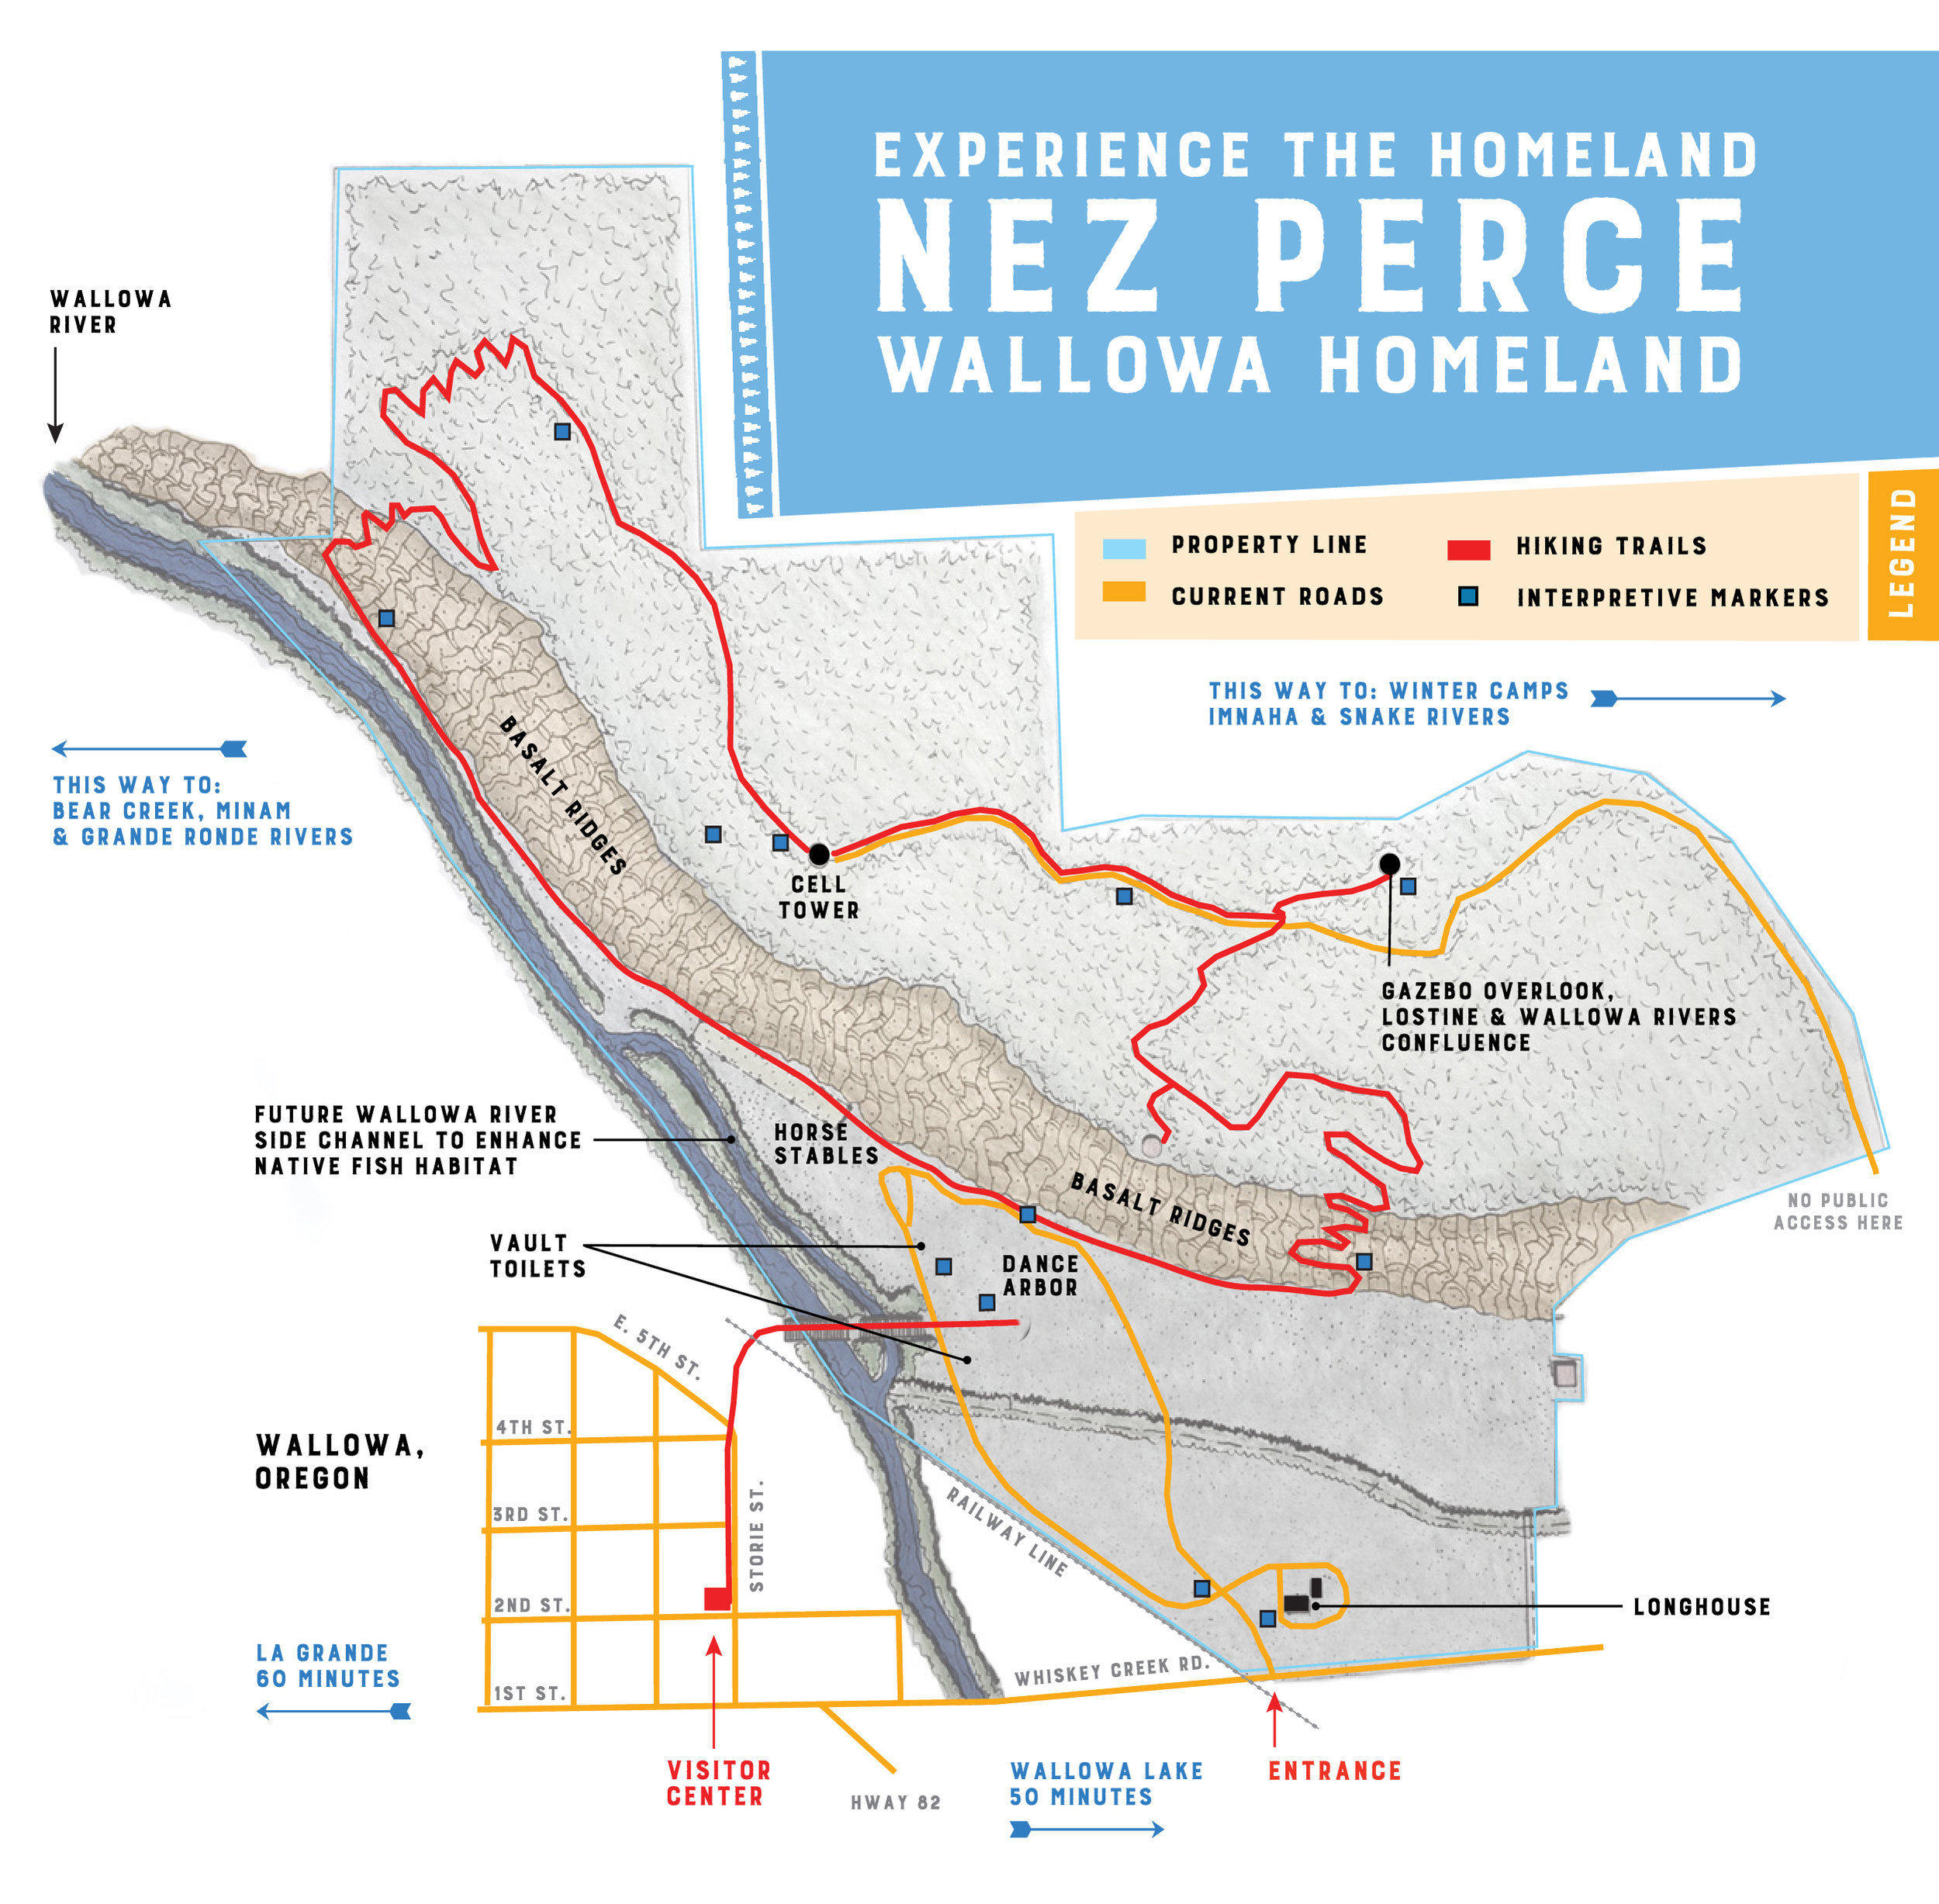 Nez Perce Wallowa Homeland Map FINAL.jpg